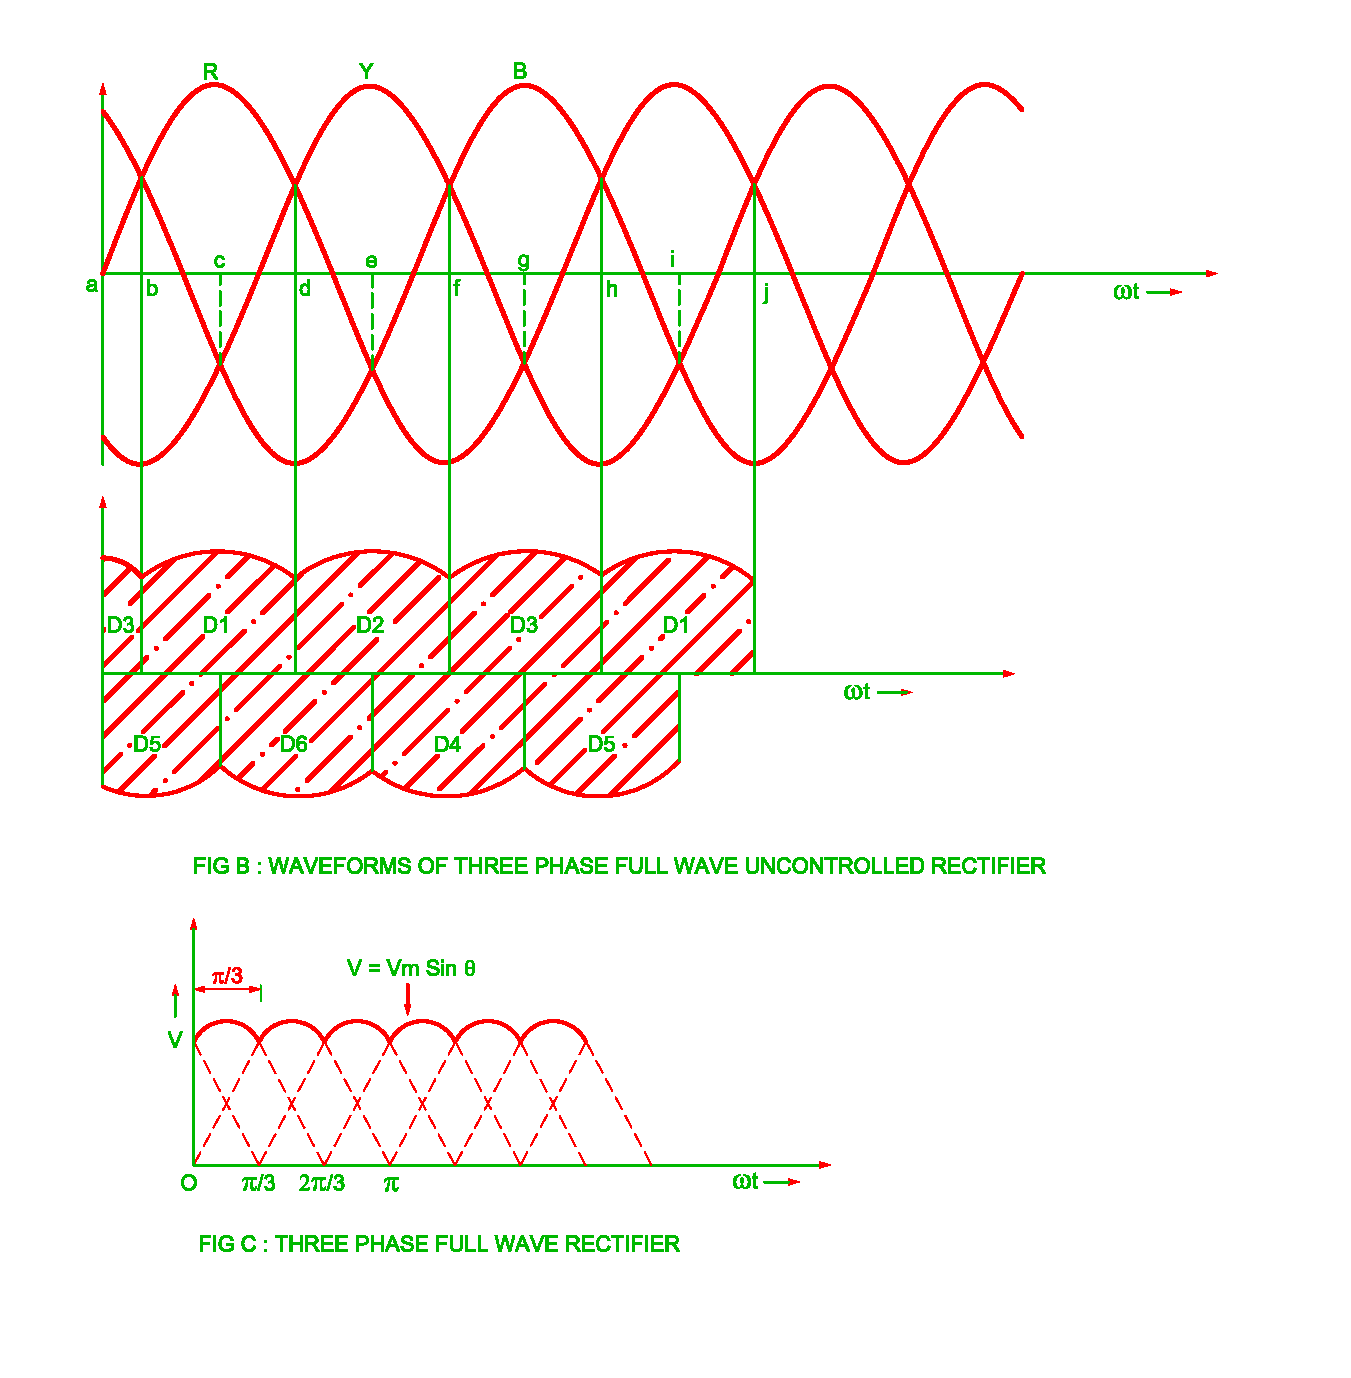 hight resolution of three phase fullwave uncontrolled waveforms jpg